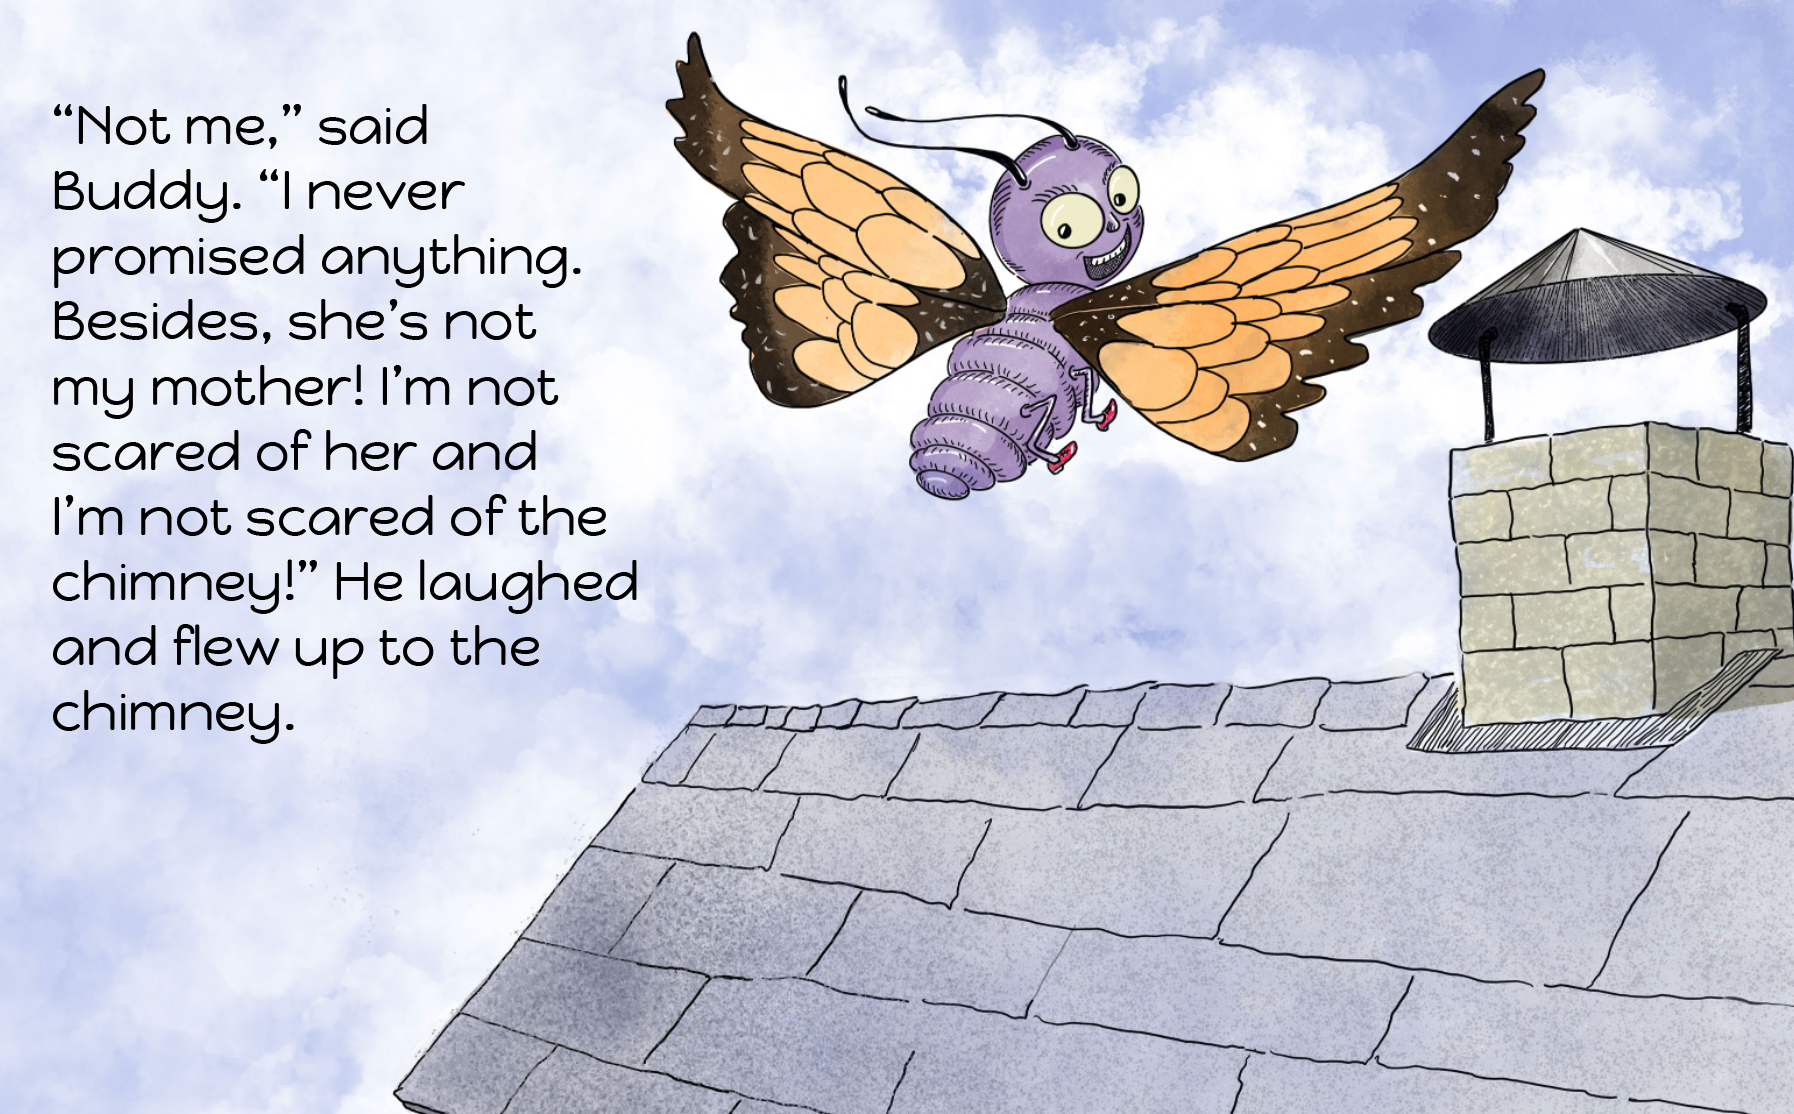 buddy_flies_to_roof_original_blog.png  hd aspect ratio, 16:9, children's picture book, e-book format